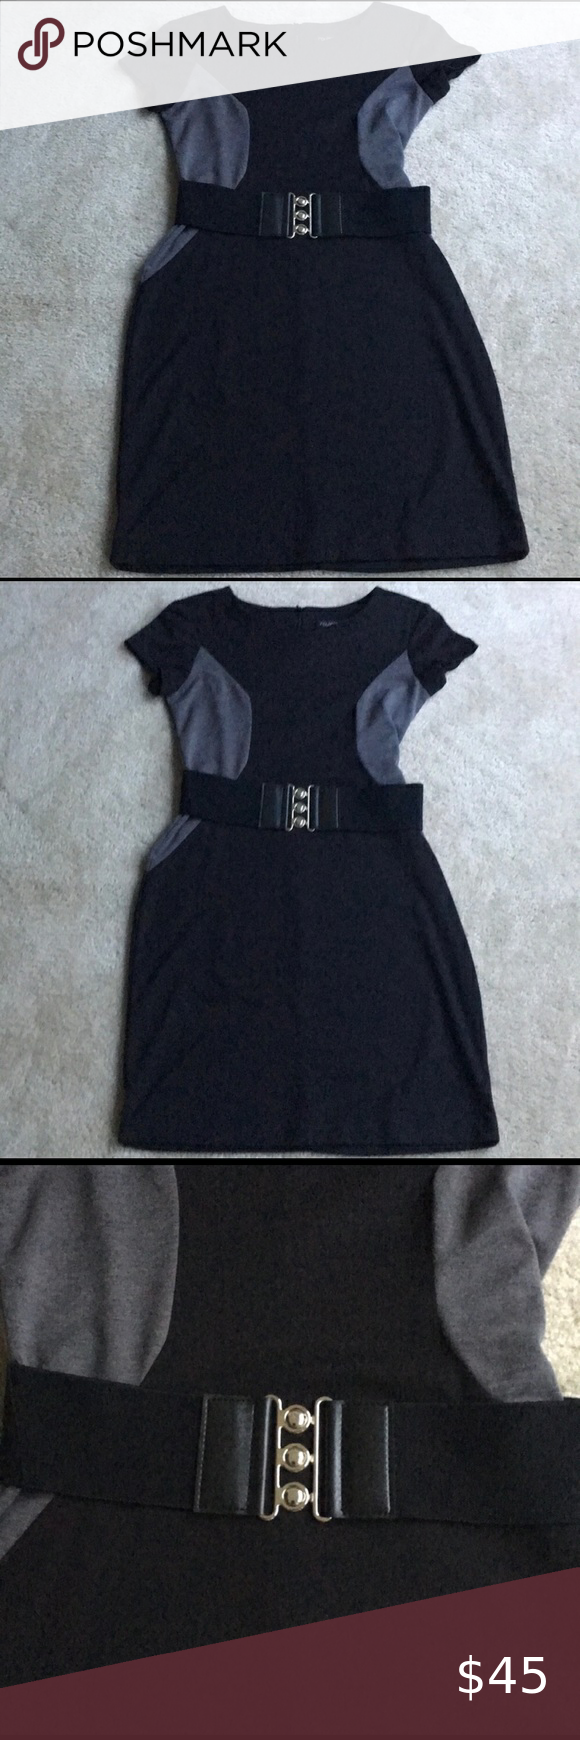 Roulette Black And Gray Dress With Belt Gray Dress Clothes Design Dresses [ 1740 x 580 Pixel ]